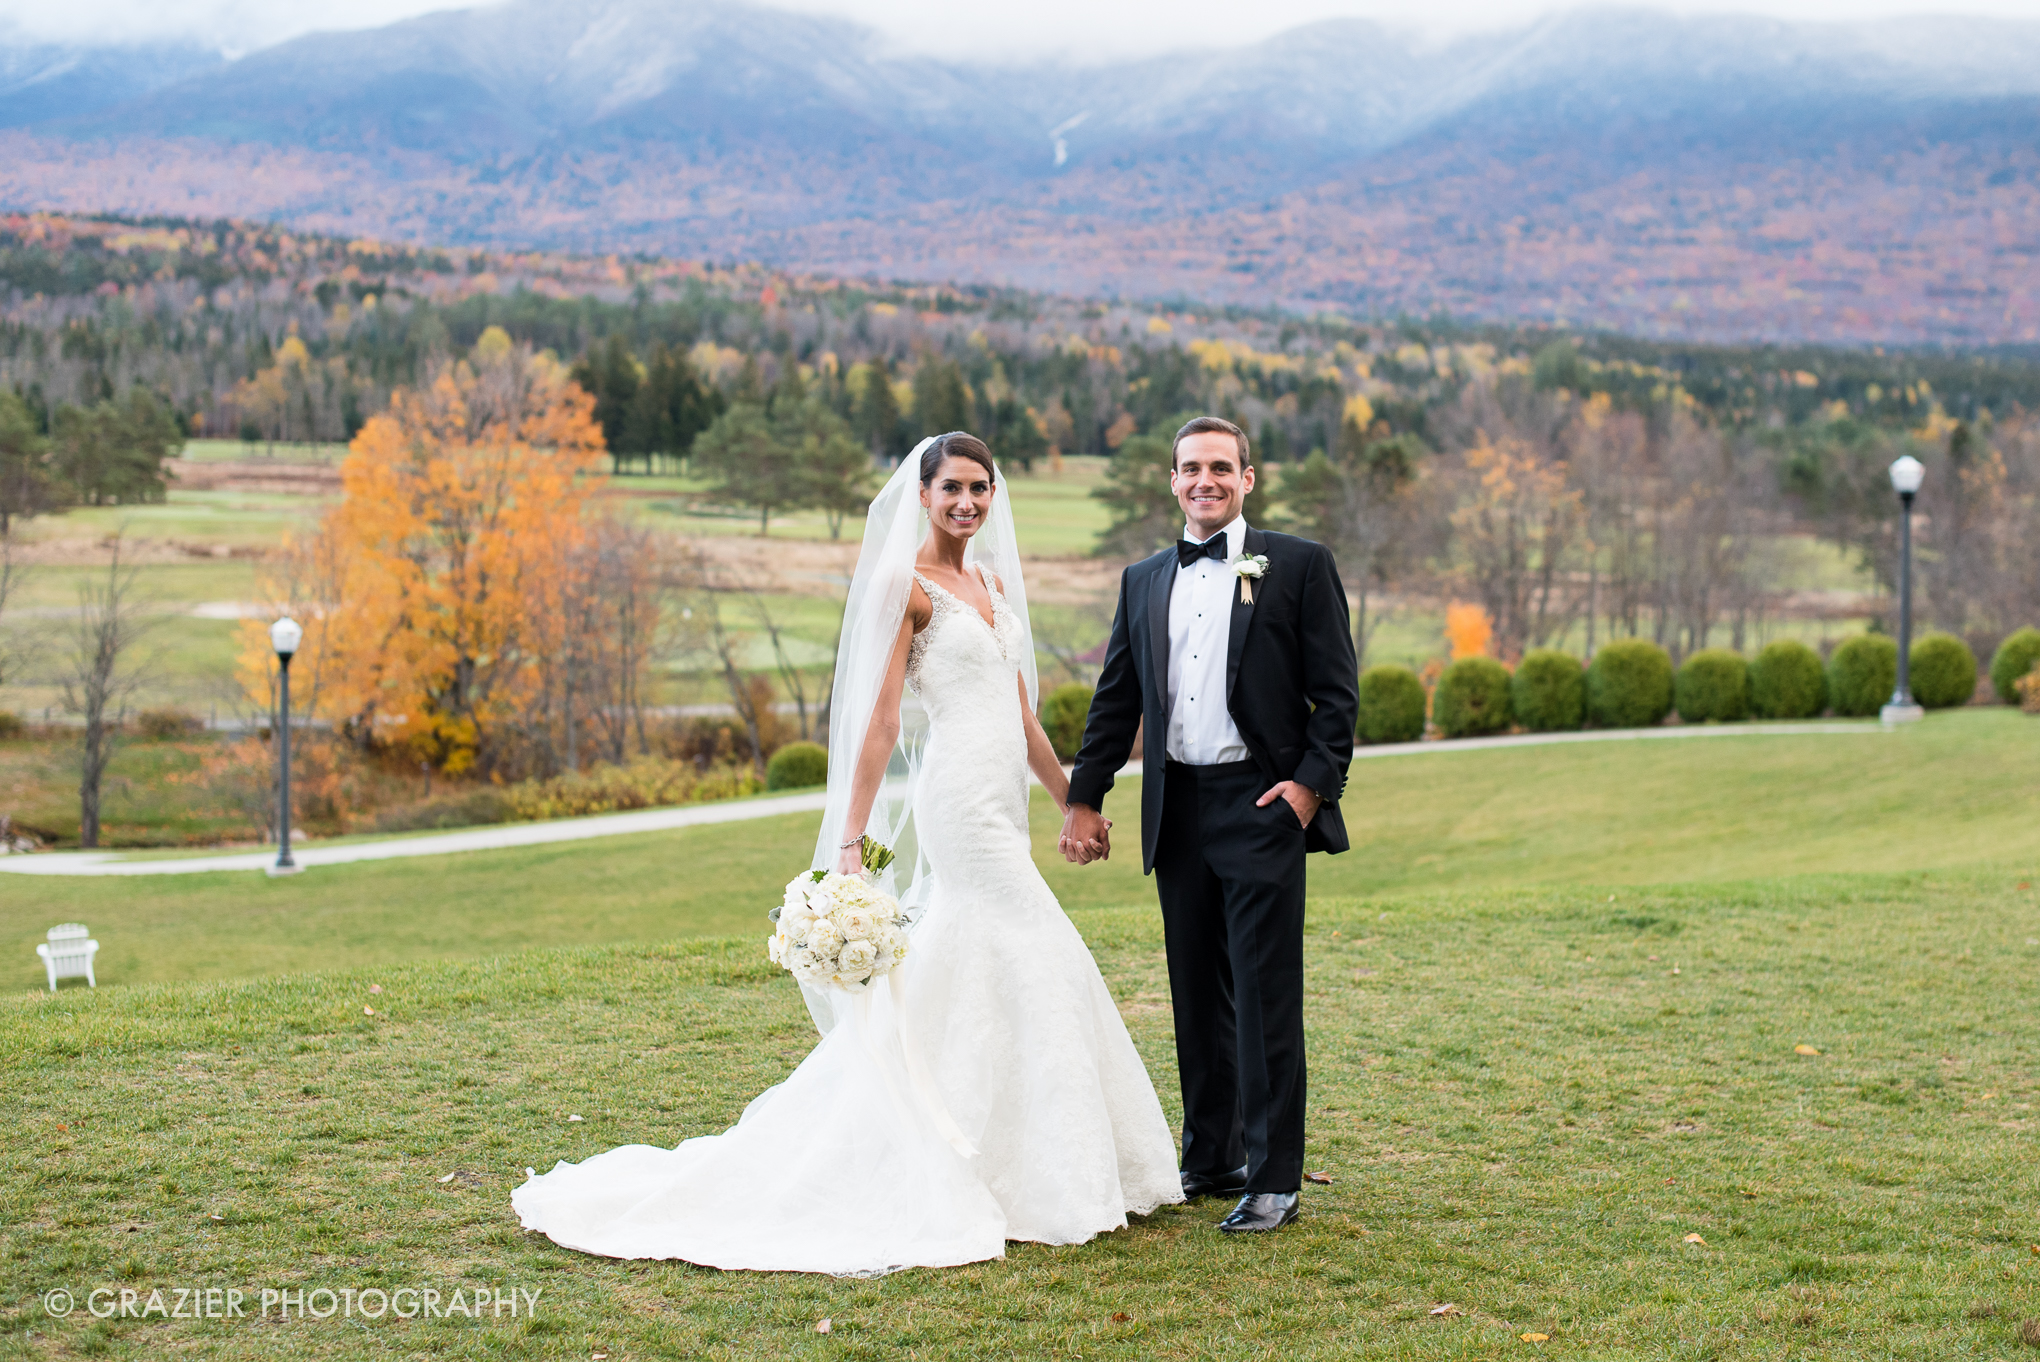 Grazier_Photography_Mount_Washington_Wedding_151017_437.jpg